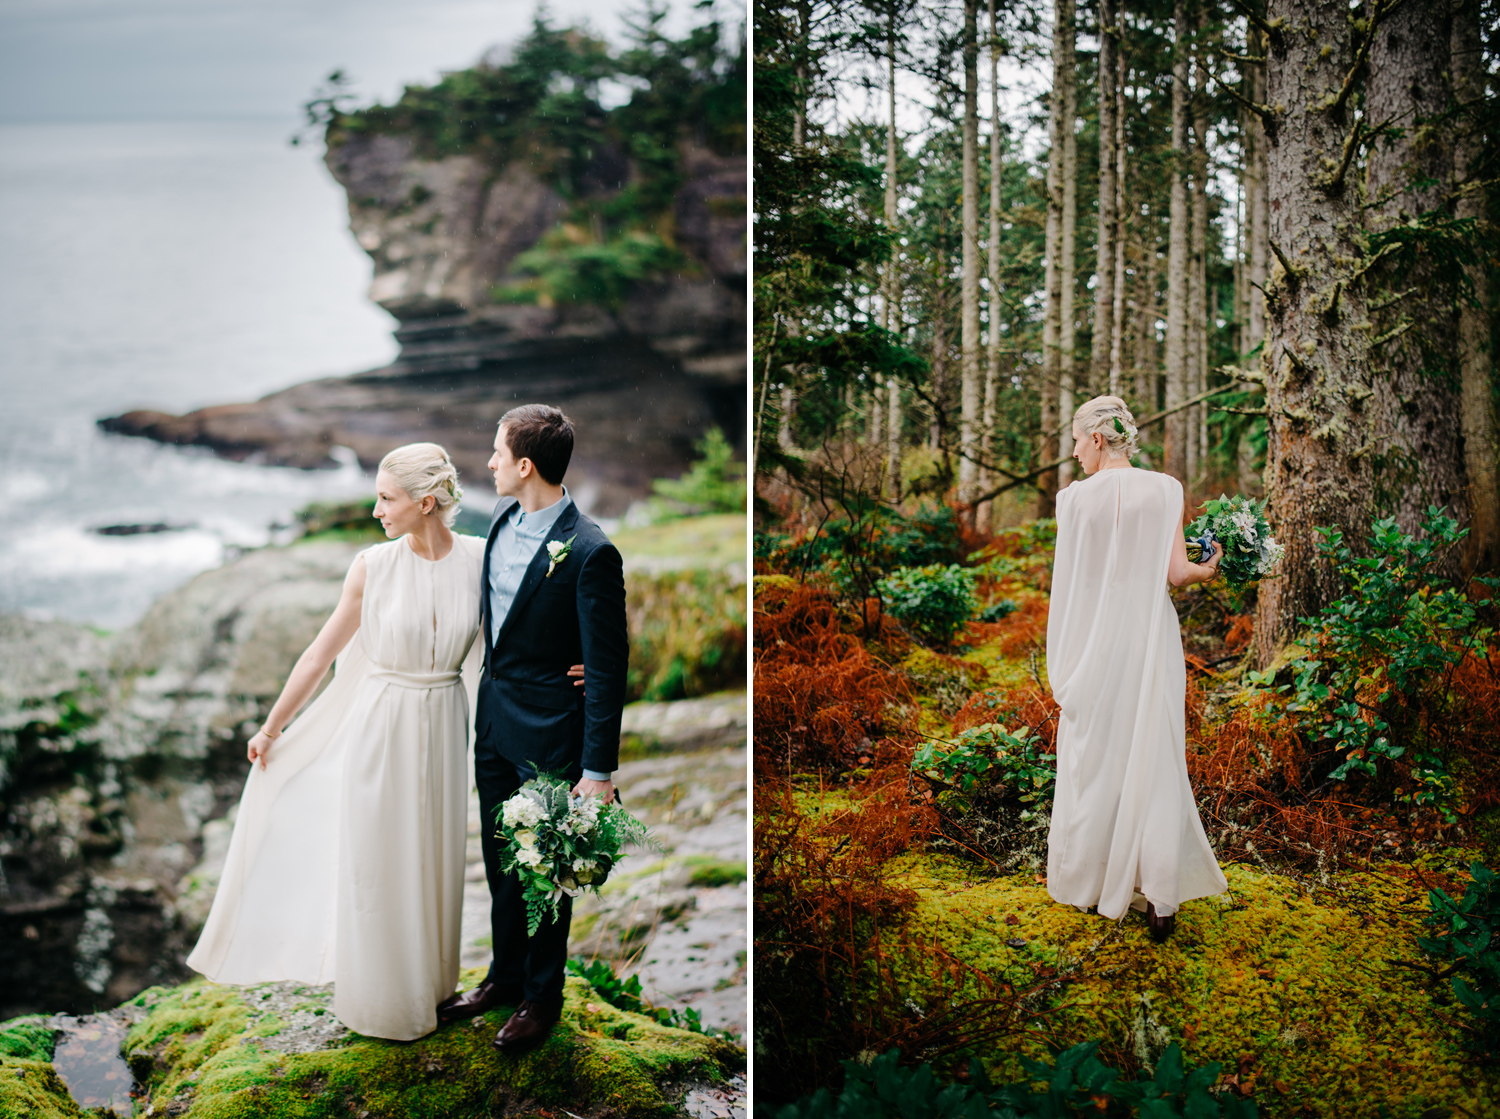 028-pnw-coastal-elopement-at-cape-flattery-by-seattle-wedding-photographer-ryan-flynn.jpg